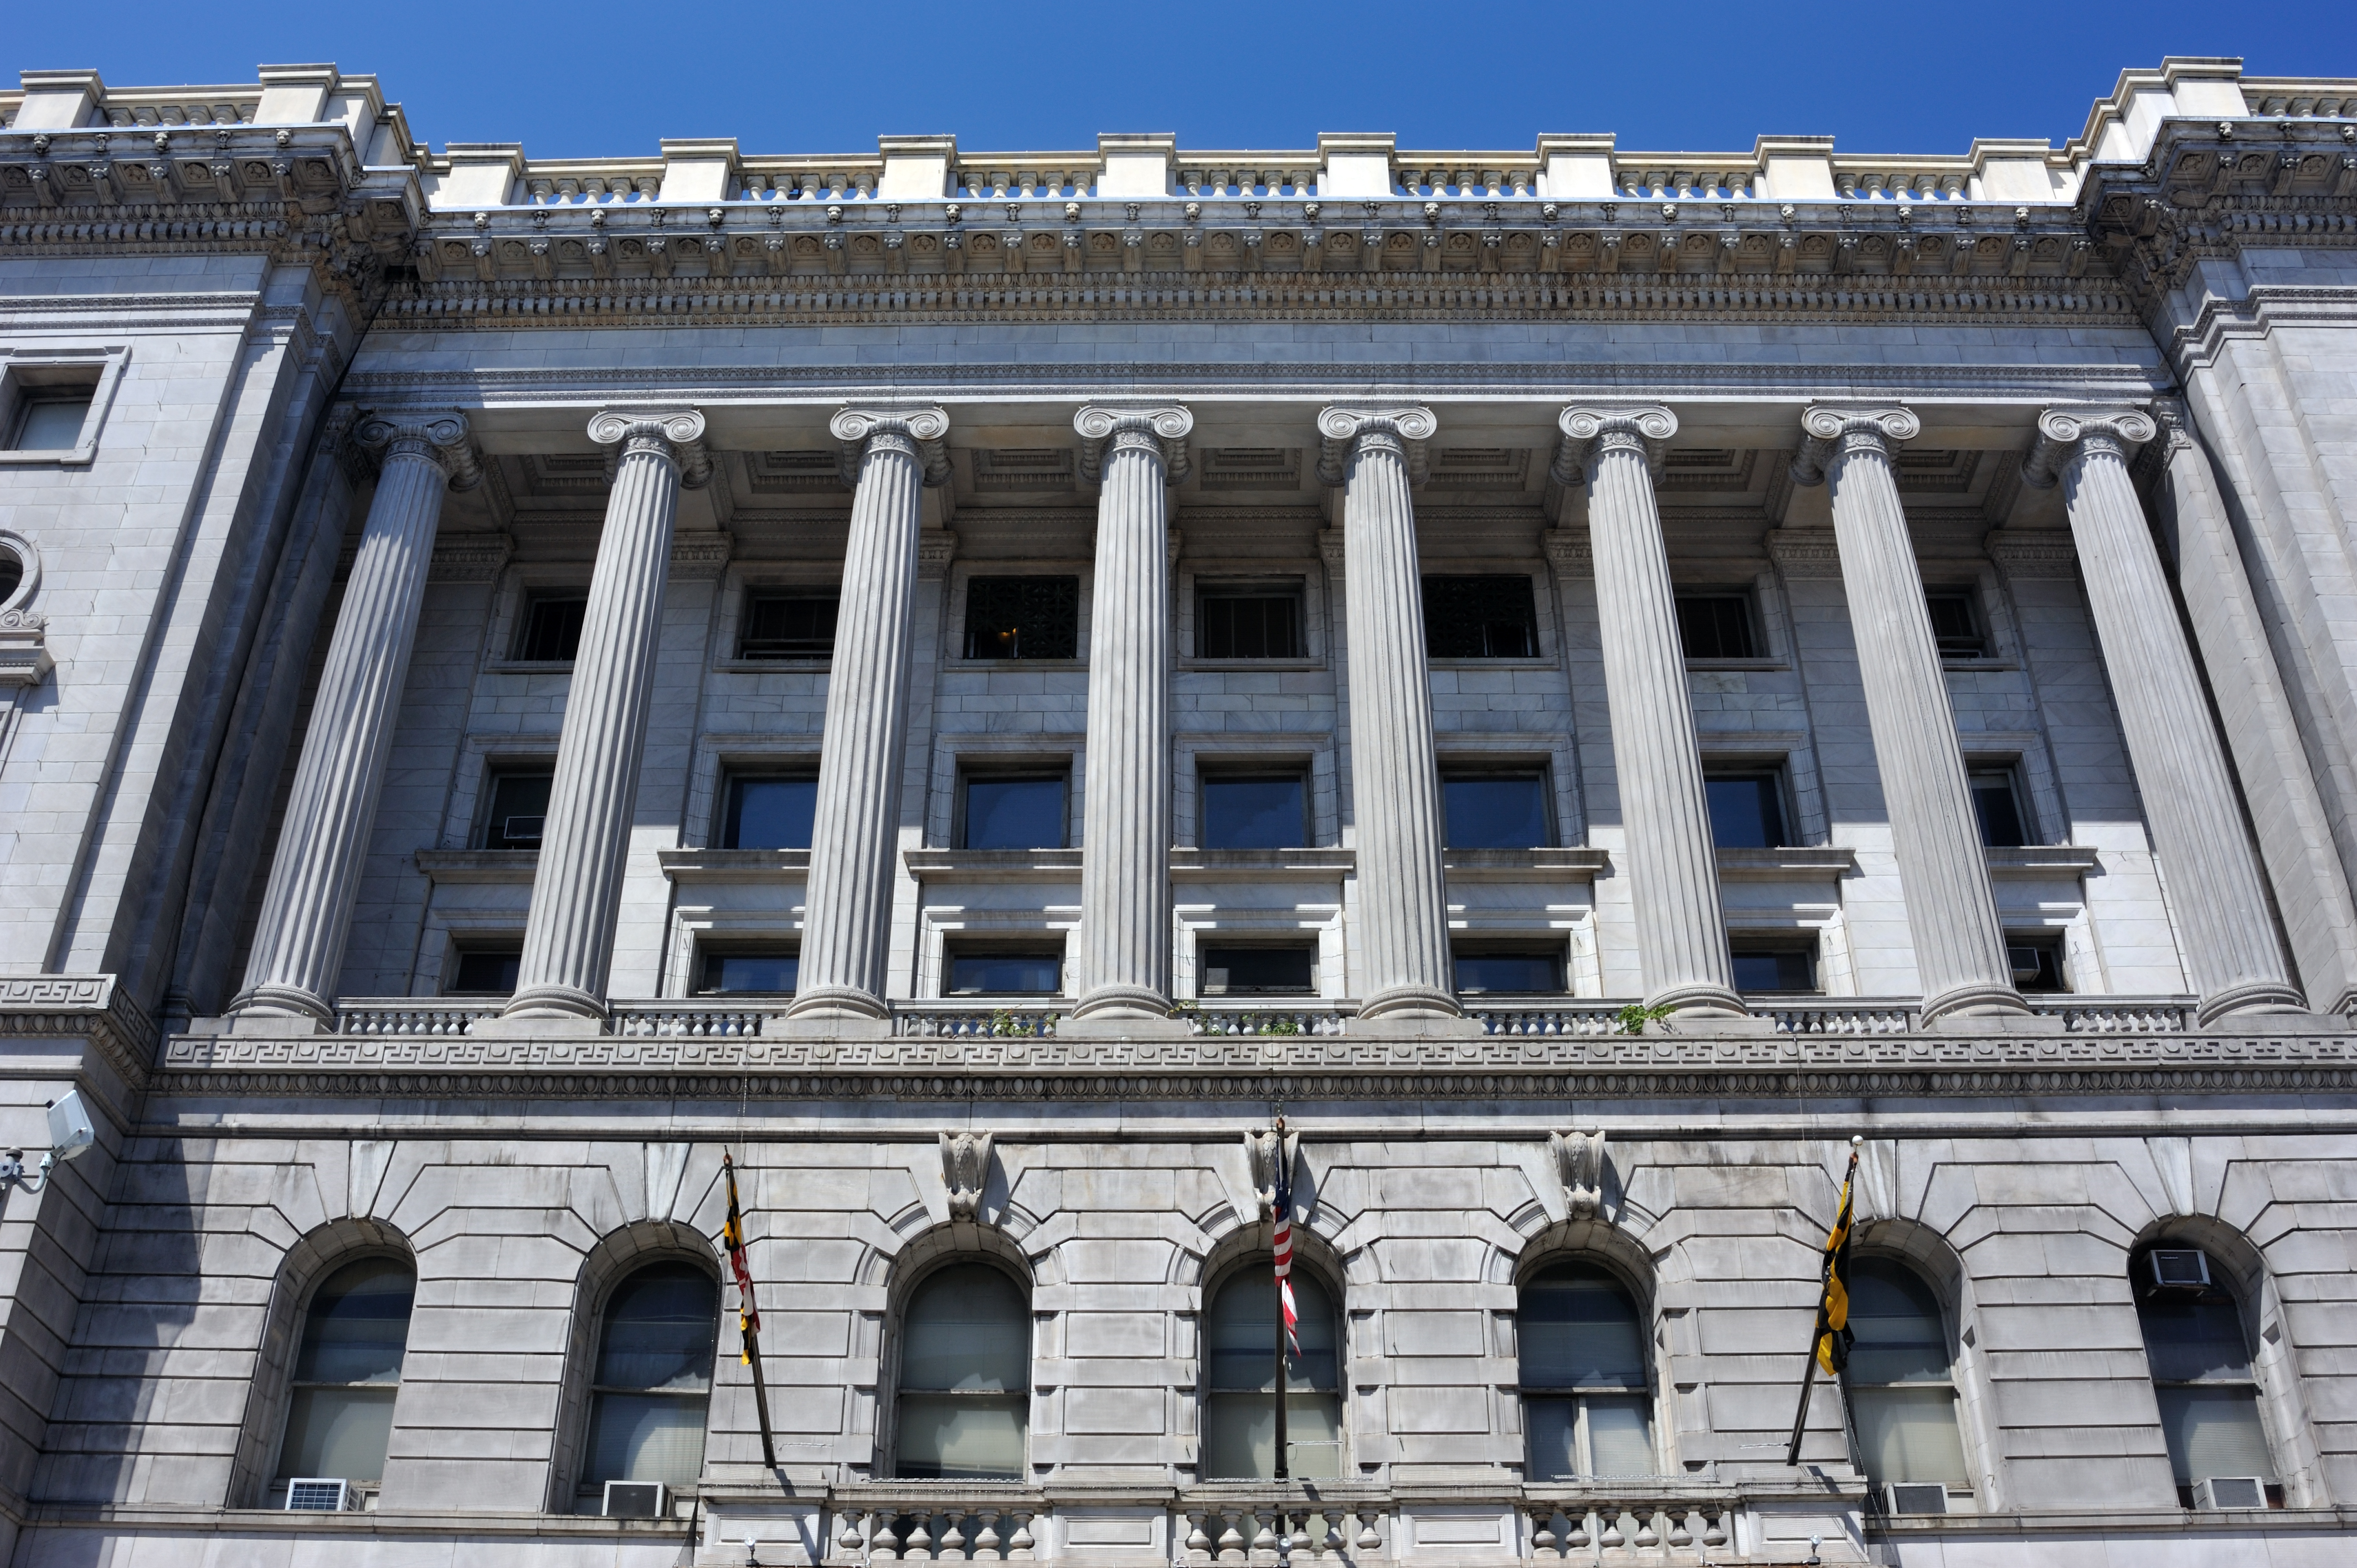 Courthouse in Baltimore